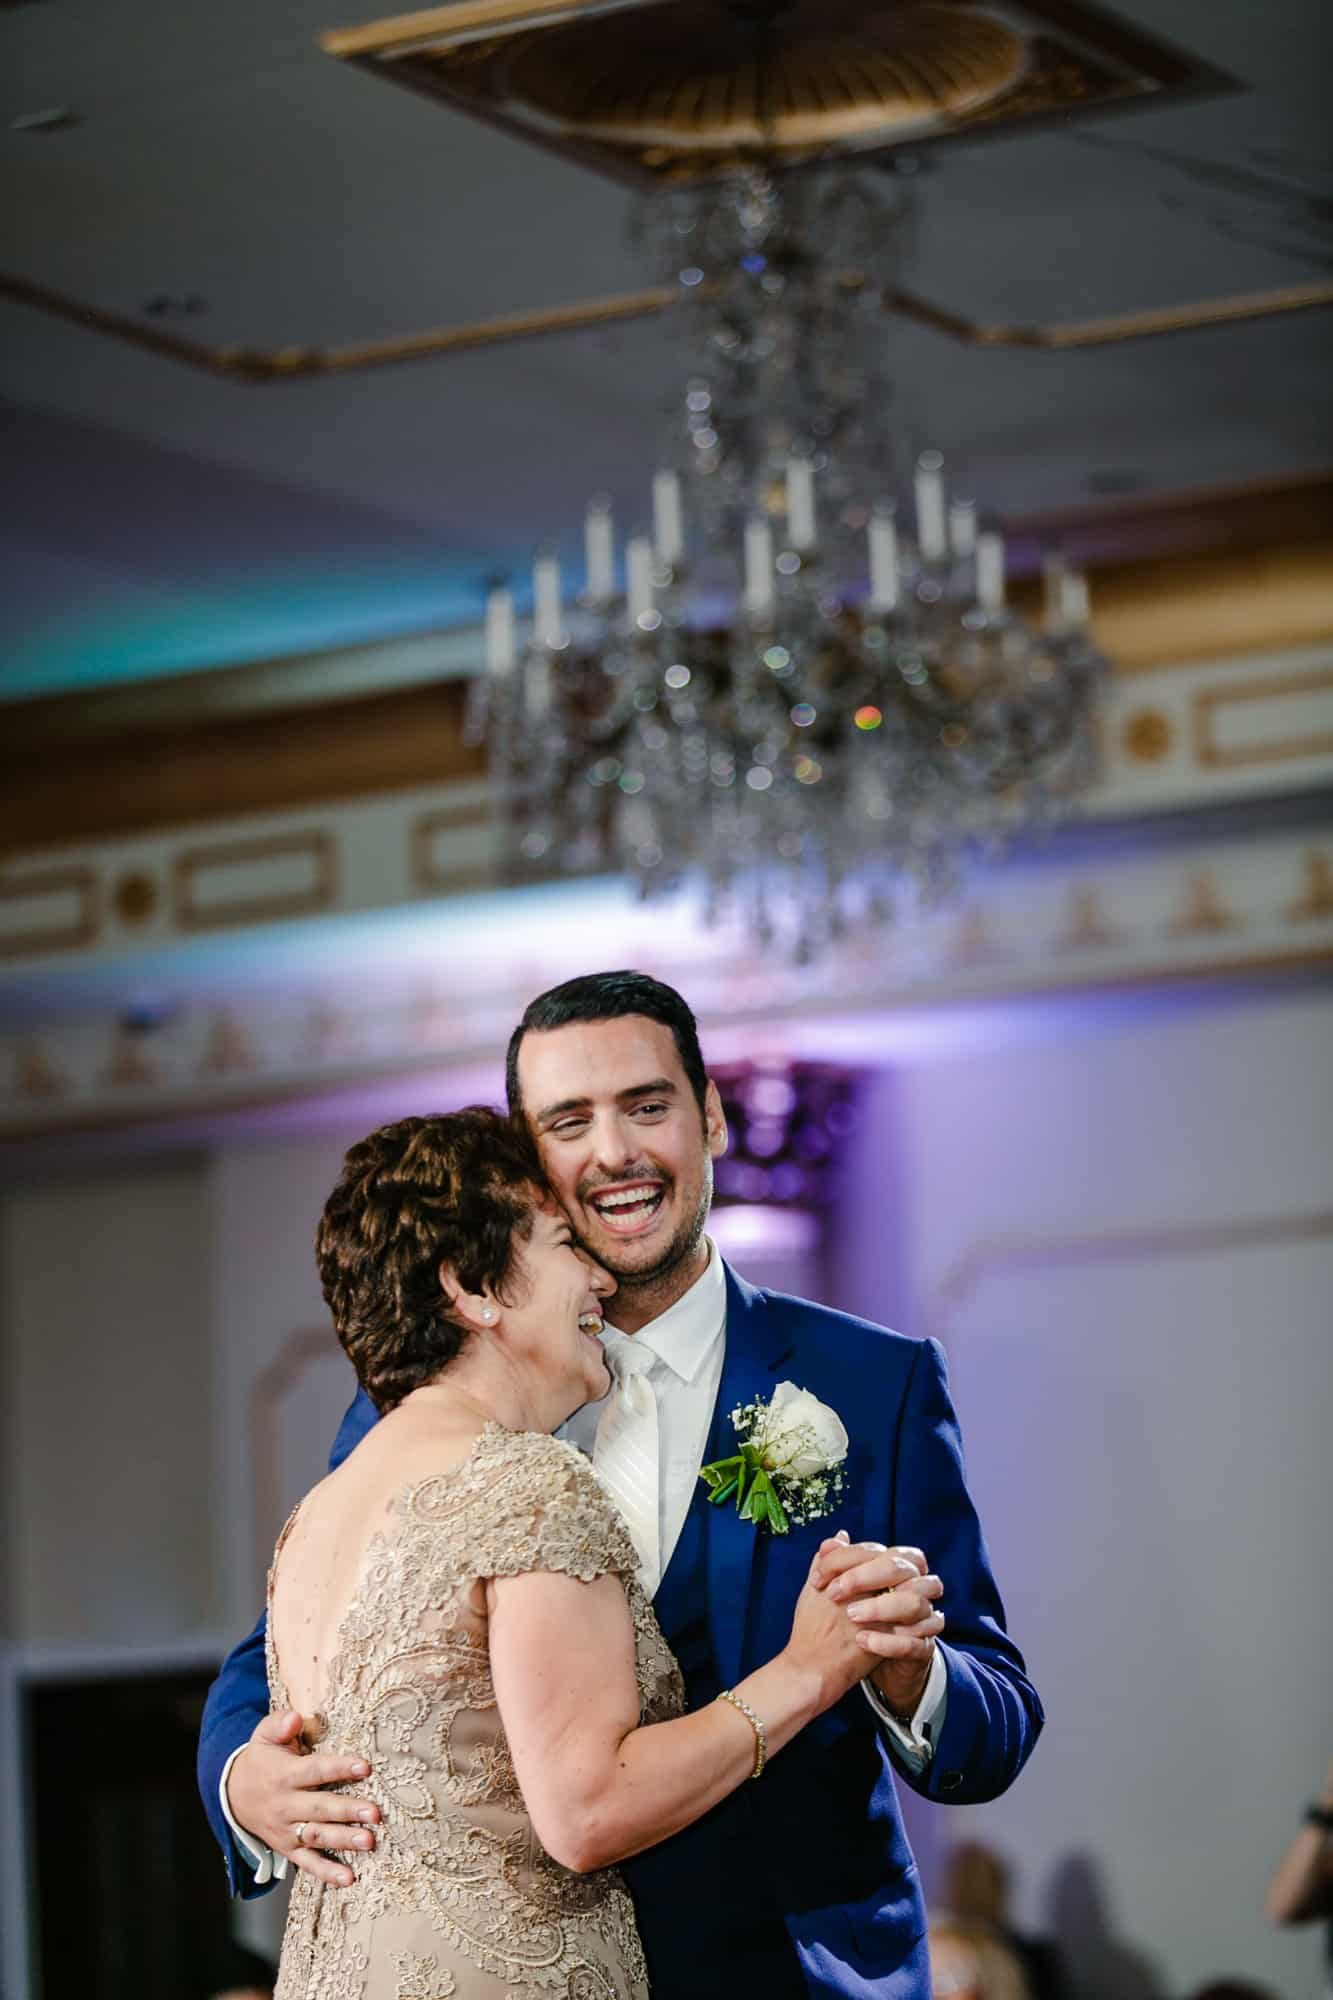 Groom smiling while dancing with mother